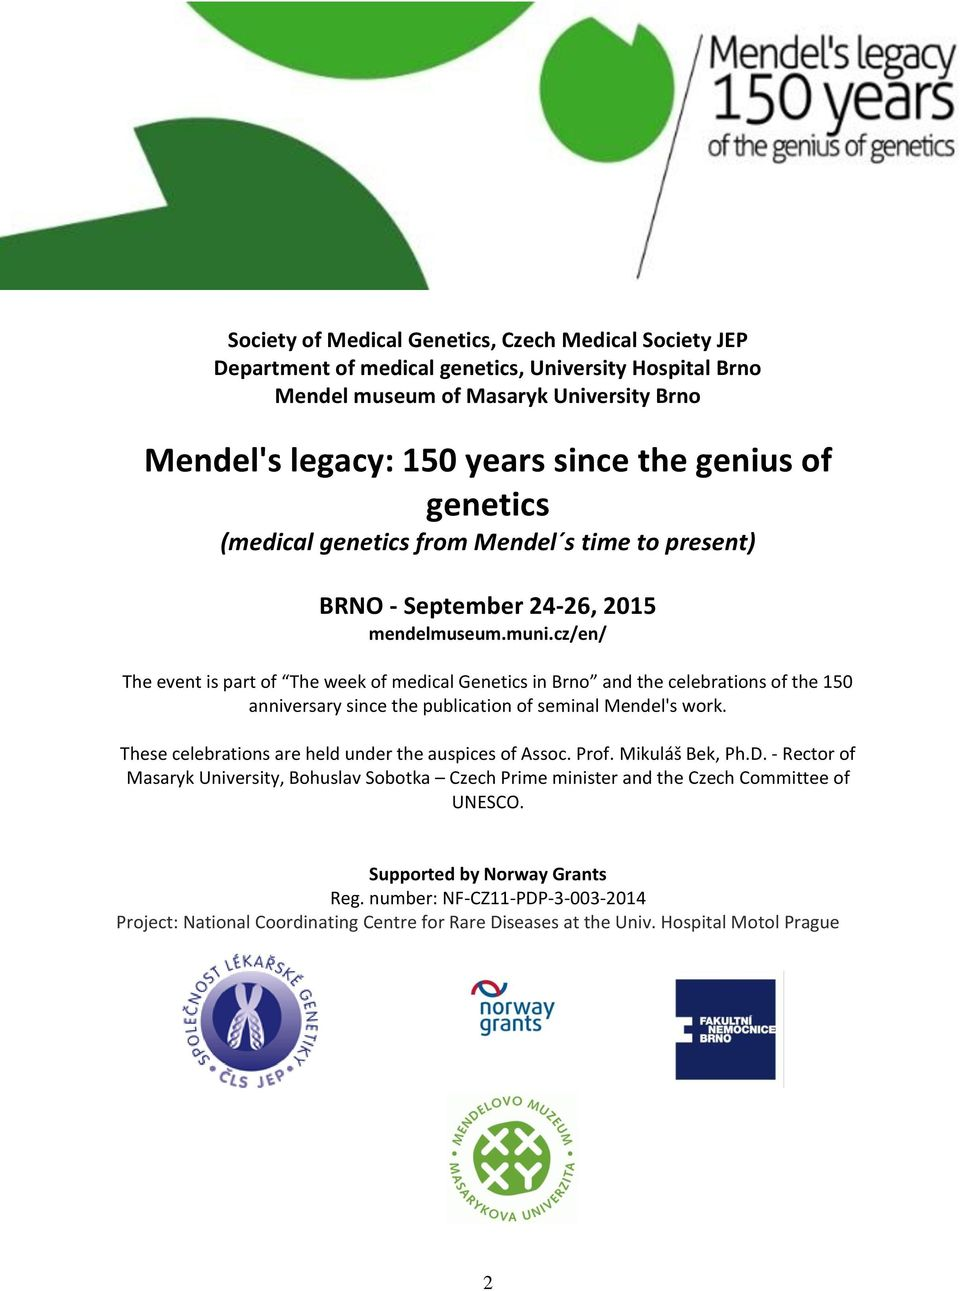 cz/en/ The event is part of The week of medical Genetics in Brno and the celebrations of the 150 anniversary since the publication of seminal Mendel's work.